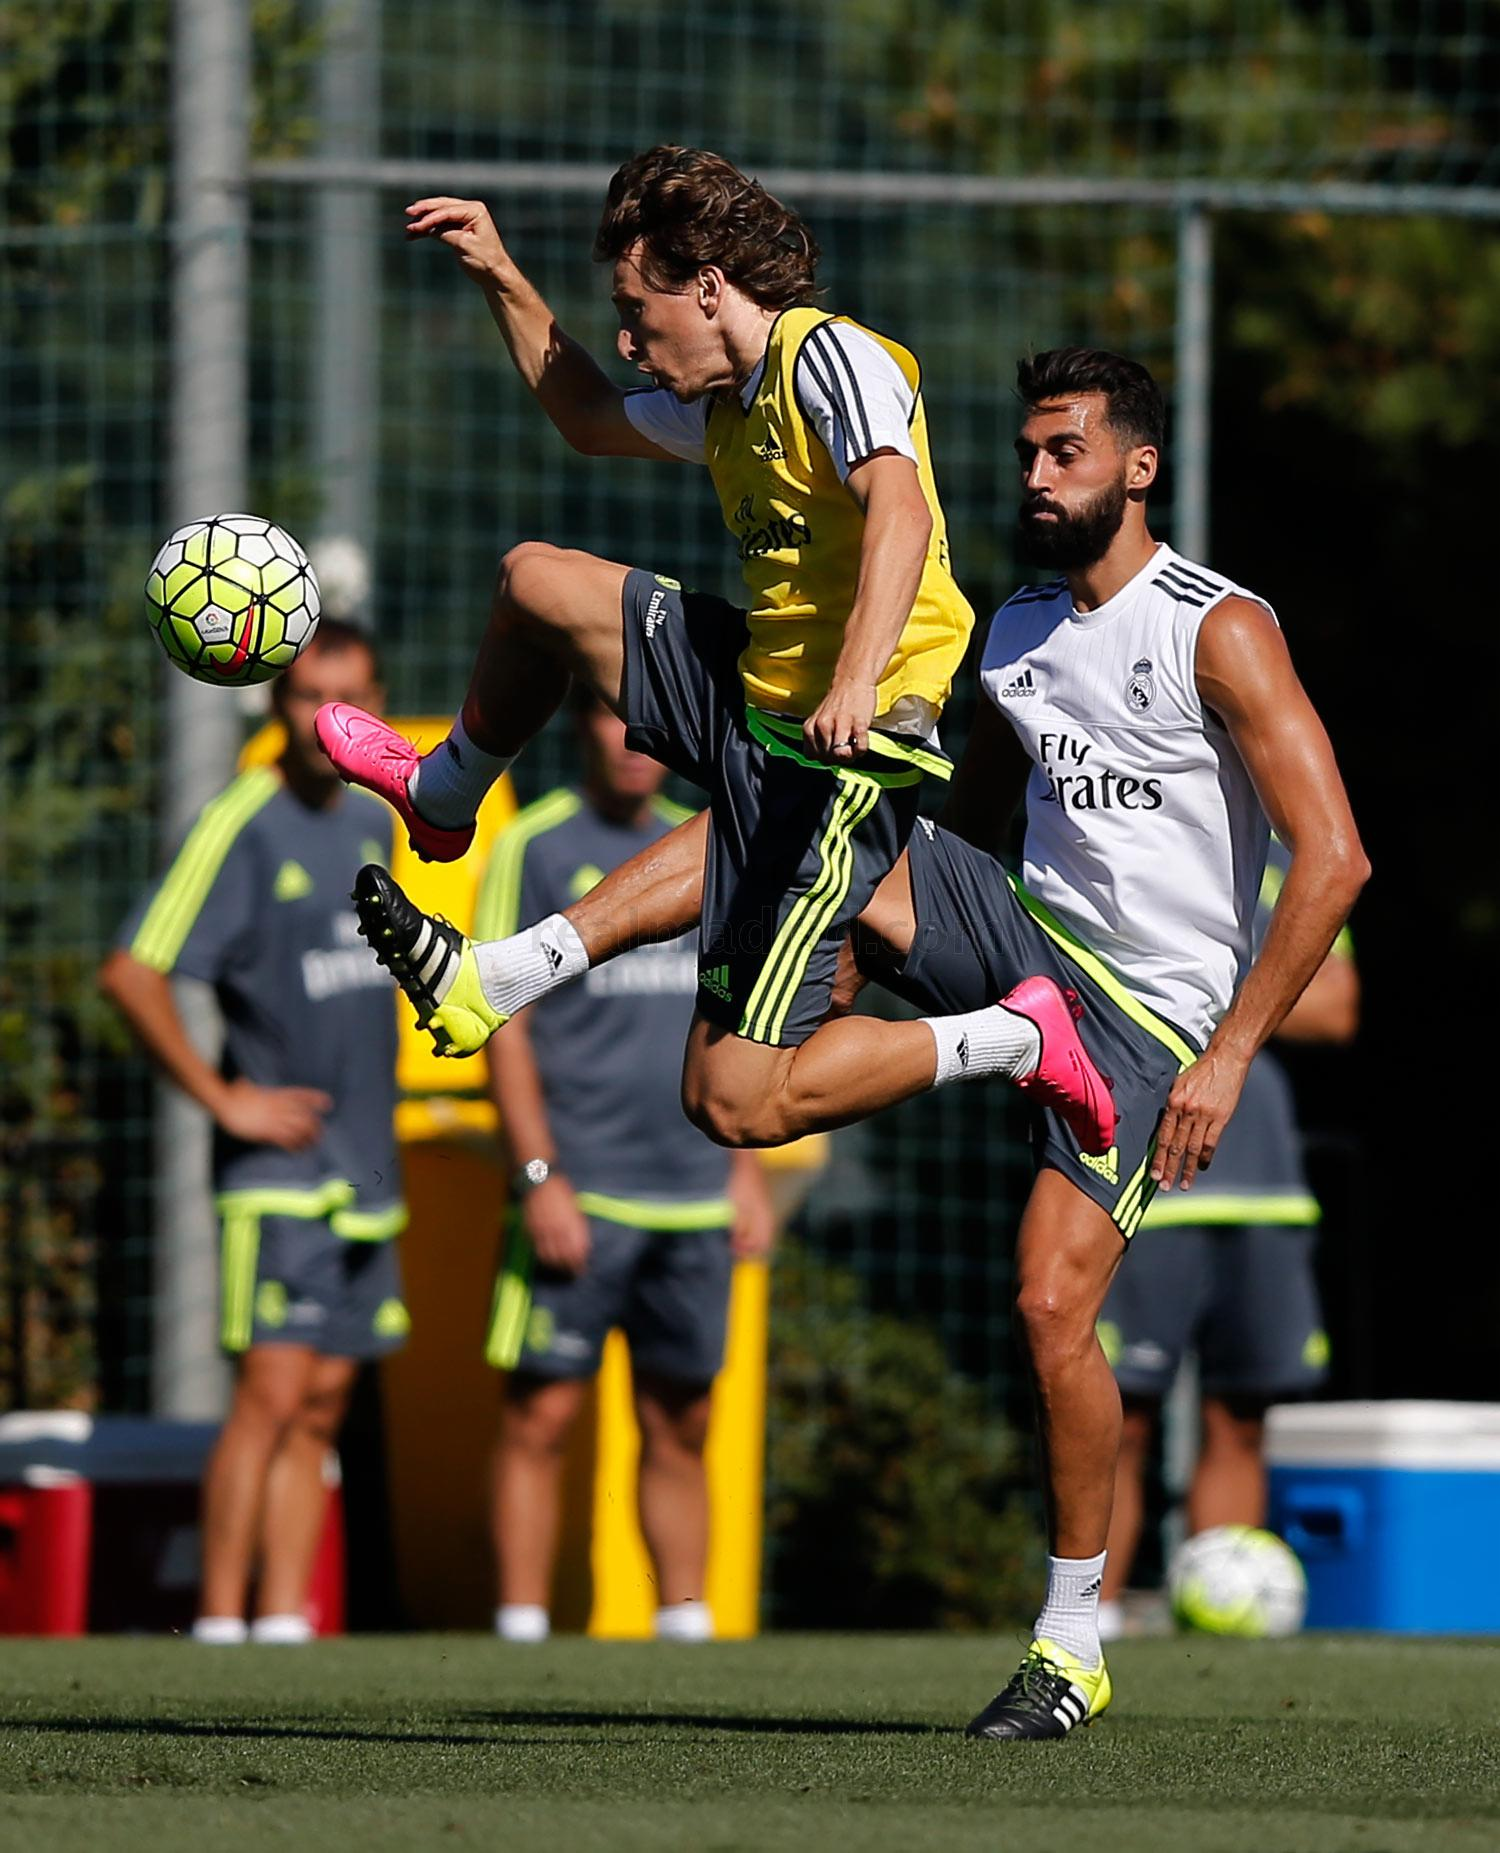 Real Madrid - Entrenamiento del Real Madrid - 13-08-2015